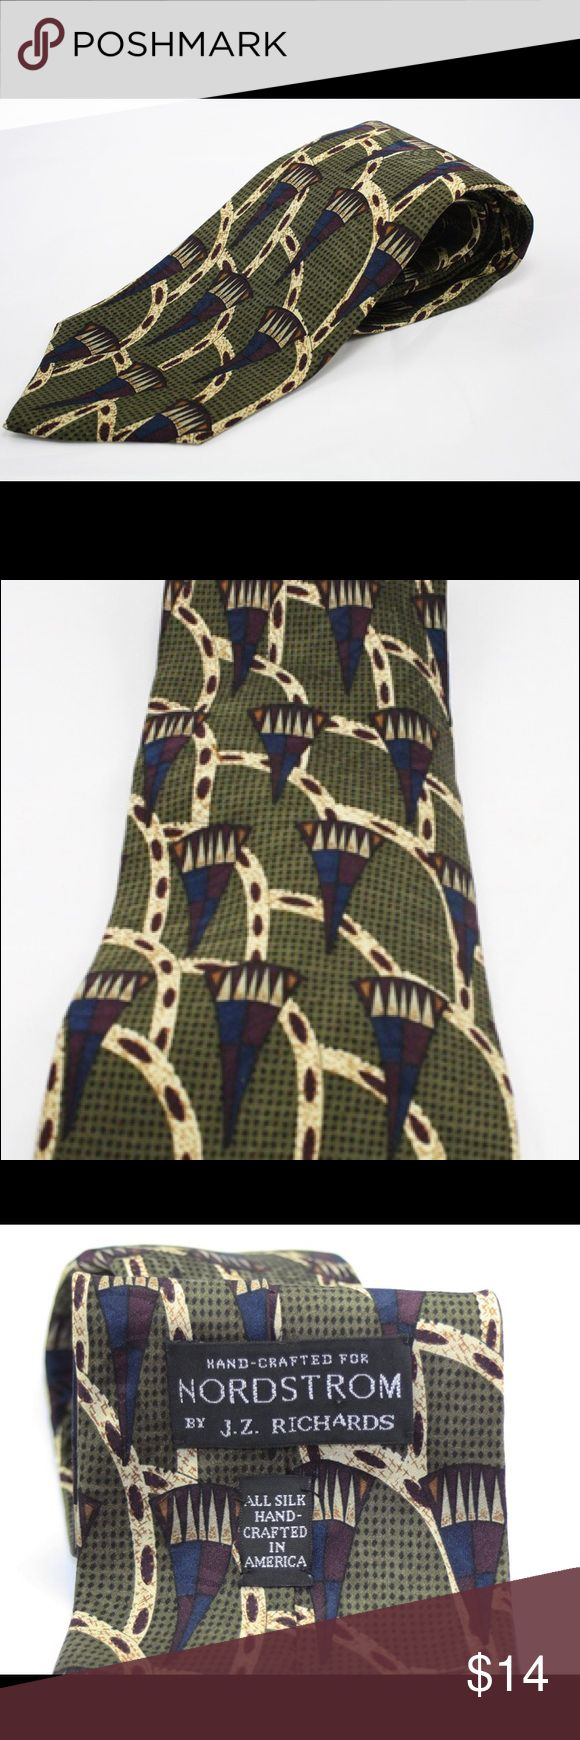 """Nordstrom 100% Silk designed by J.Z. Richards This is a very nice Nordstrom 100 %  silk tie designed by J.Z. Richards. It is olive green with blue and burgundy geometric designs. It is 56"""" in length and is 4"""" wide. Made in USA. Nordstrom Other"""